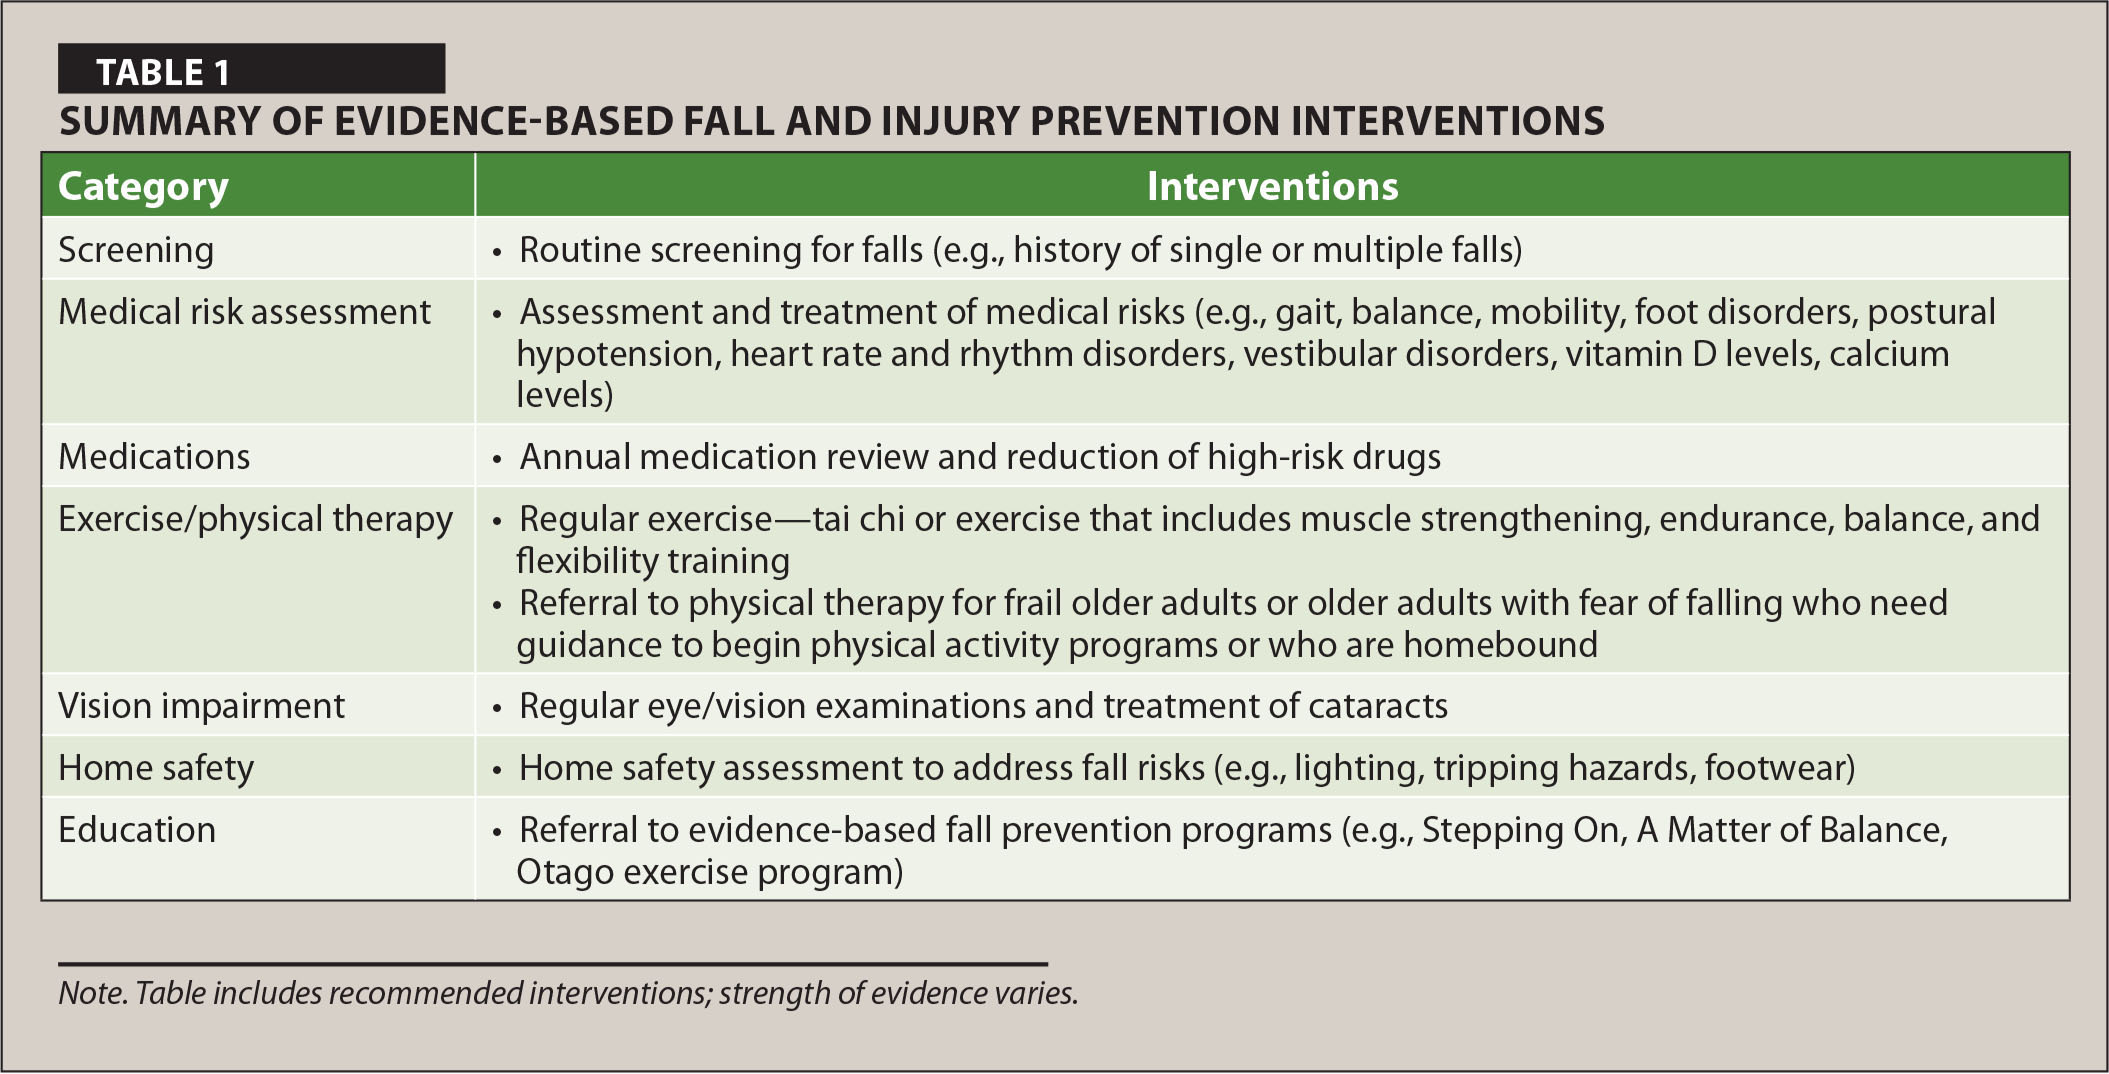 Summary of Evidence-Based Fall and Injury Prevention Interventions